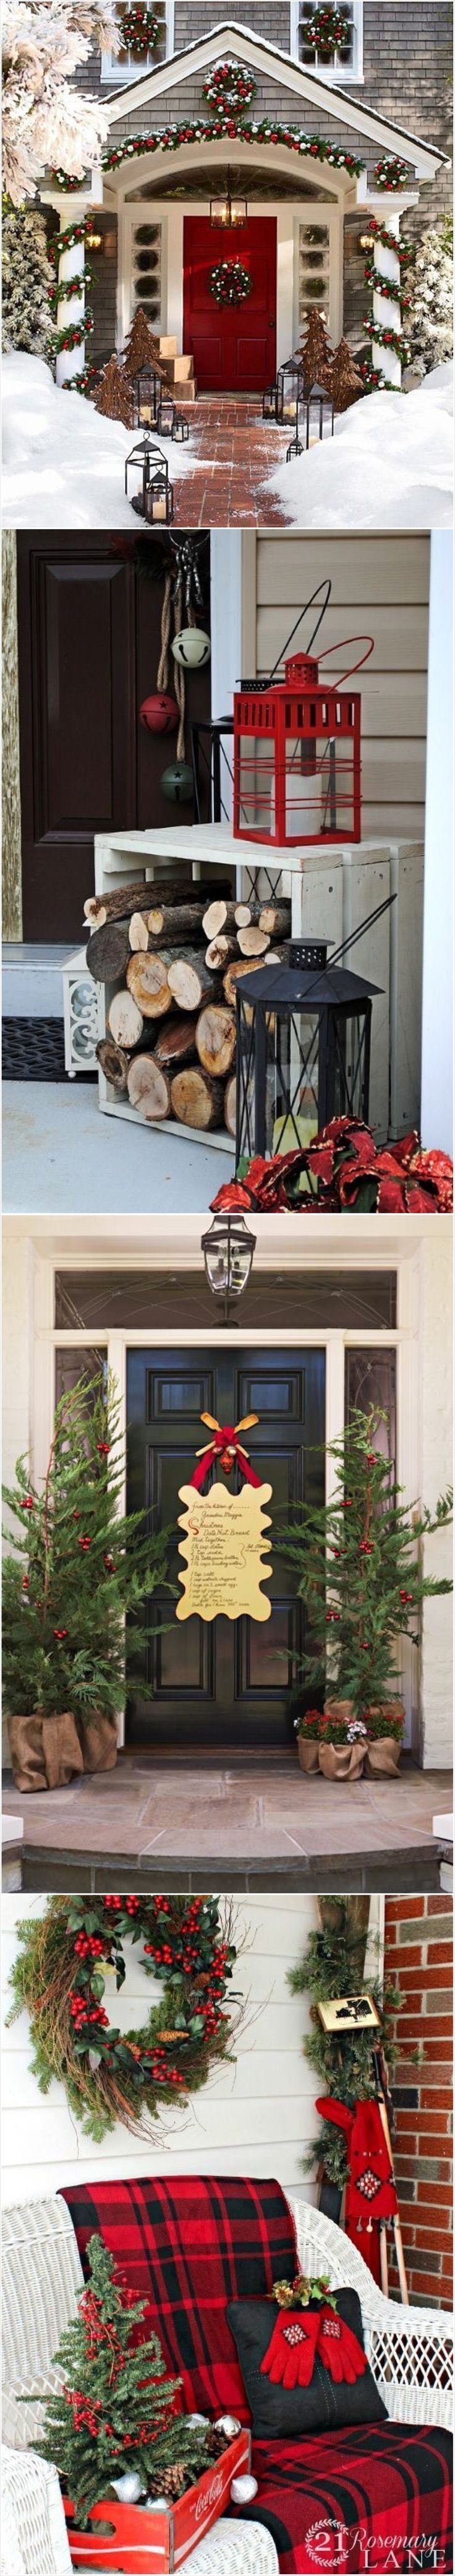 Decorating: The REAL reason for the season. ❄️